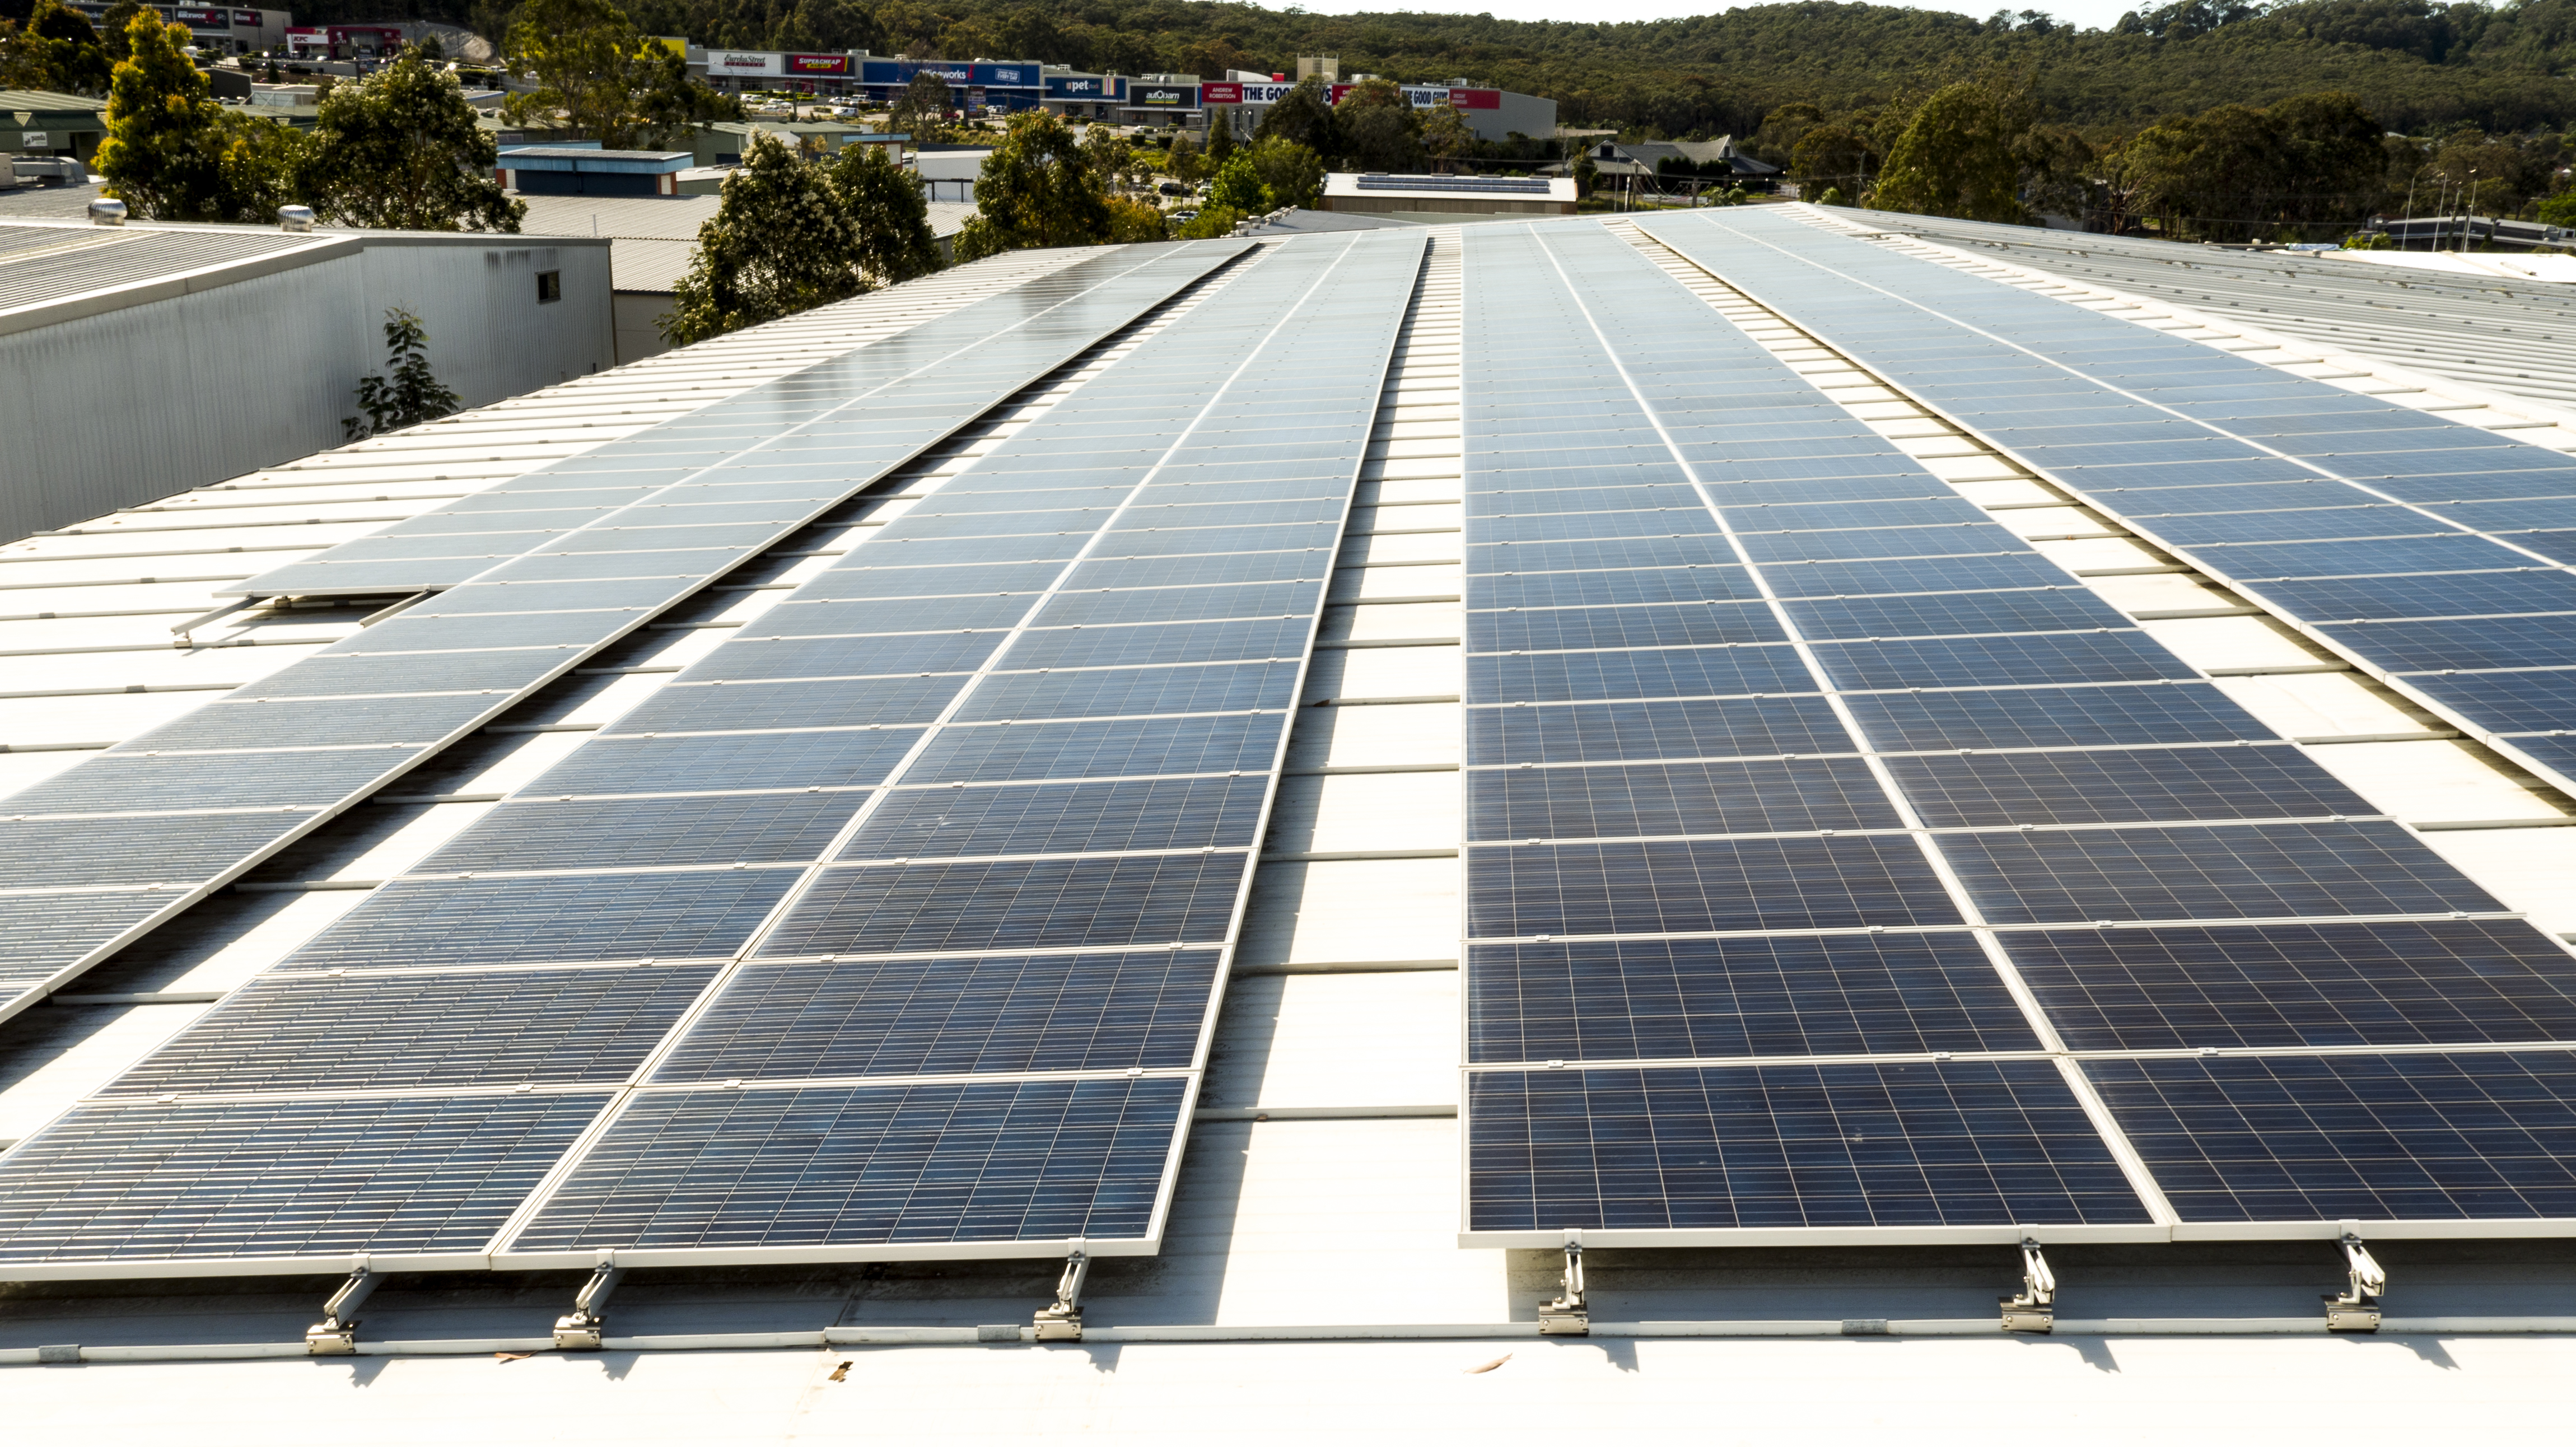 Solar Australia Reviews 33680 Installer Solarquotes Panels In Addition Cell Circuit Diagram Further View Images Of Installations